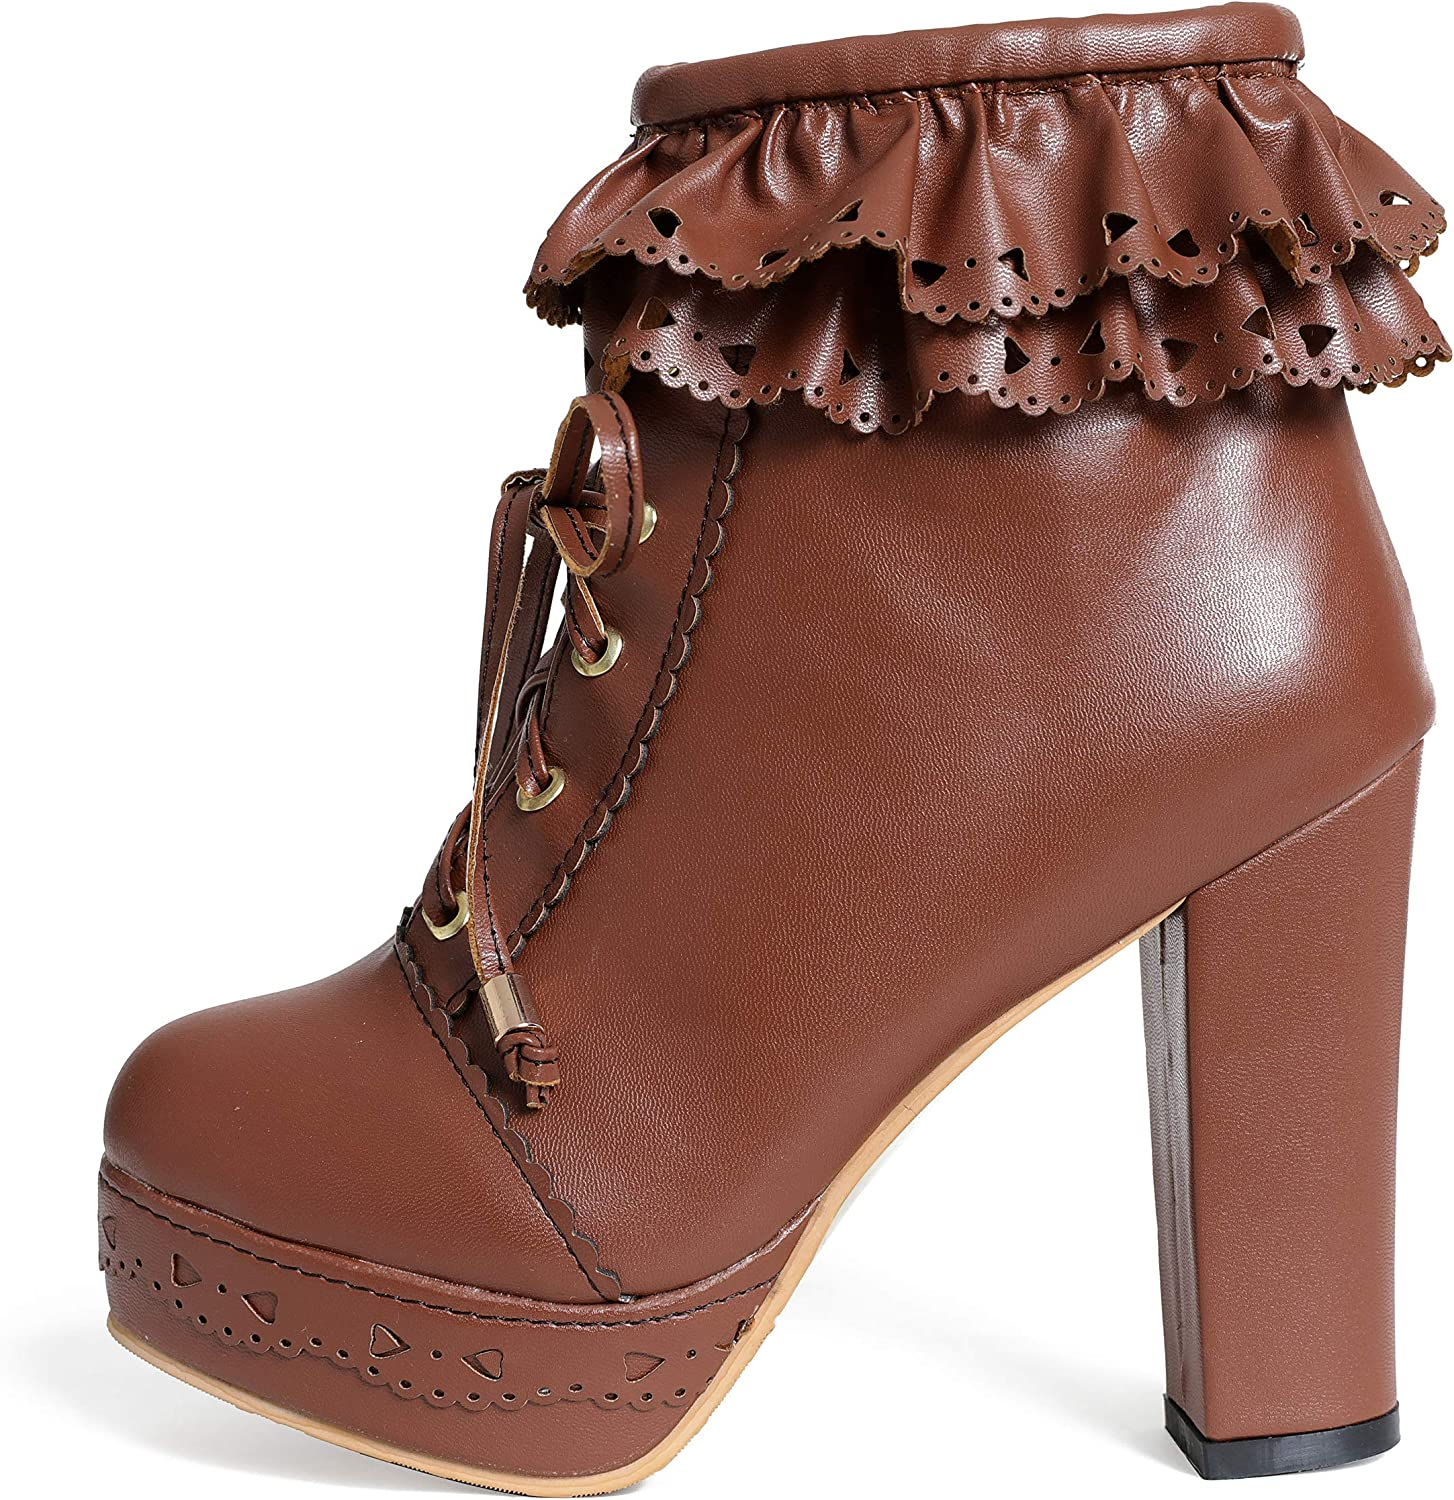 Susanny Womens Office Party Sweet Lolita Platform Chunky High Heel PU Lace up Ankle Boots